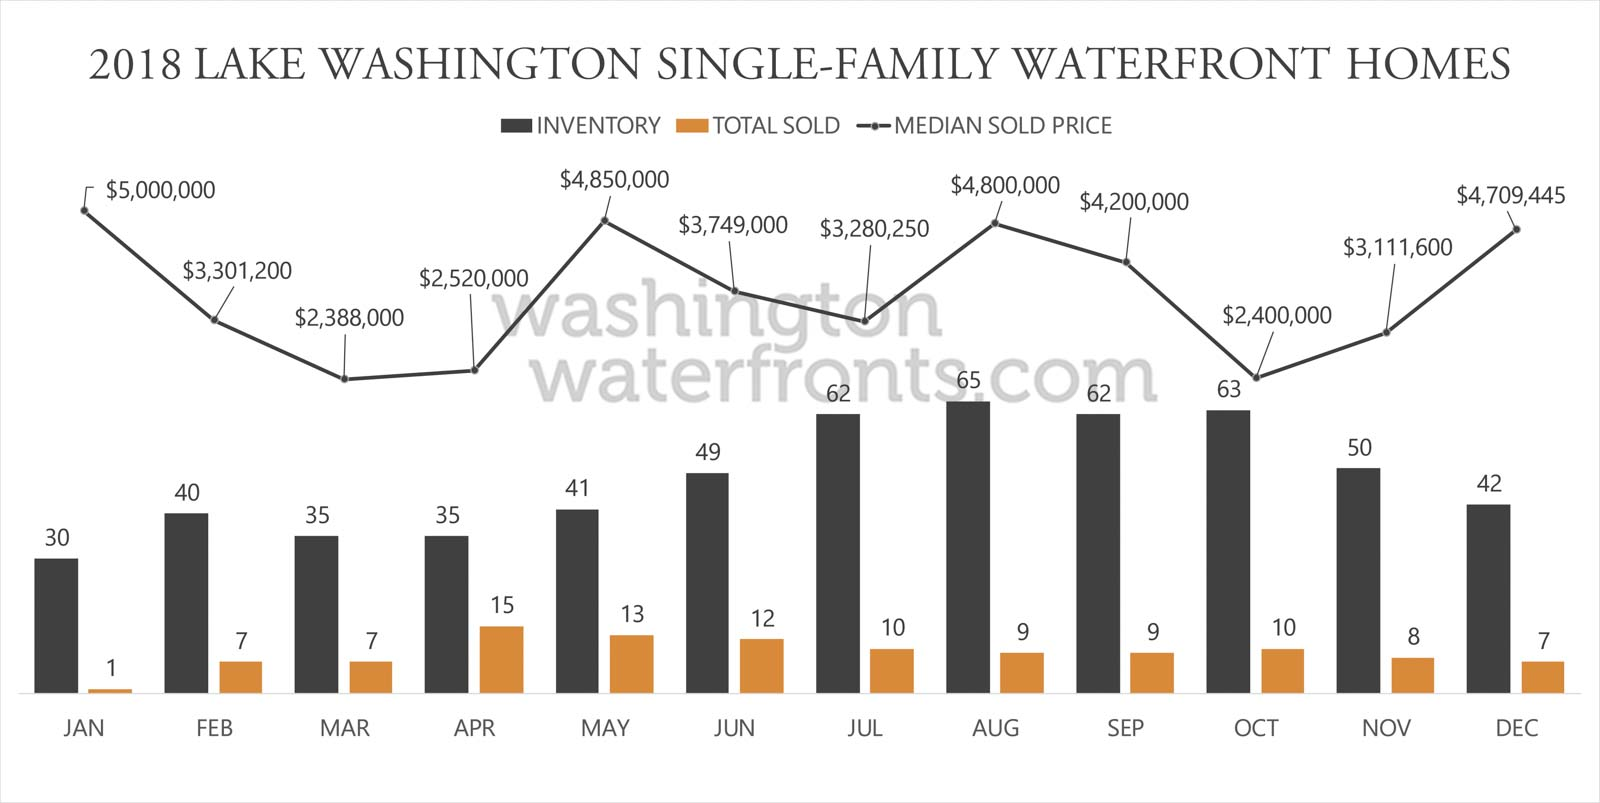 Lake Washington Waterfront Inventory